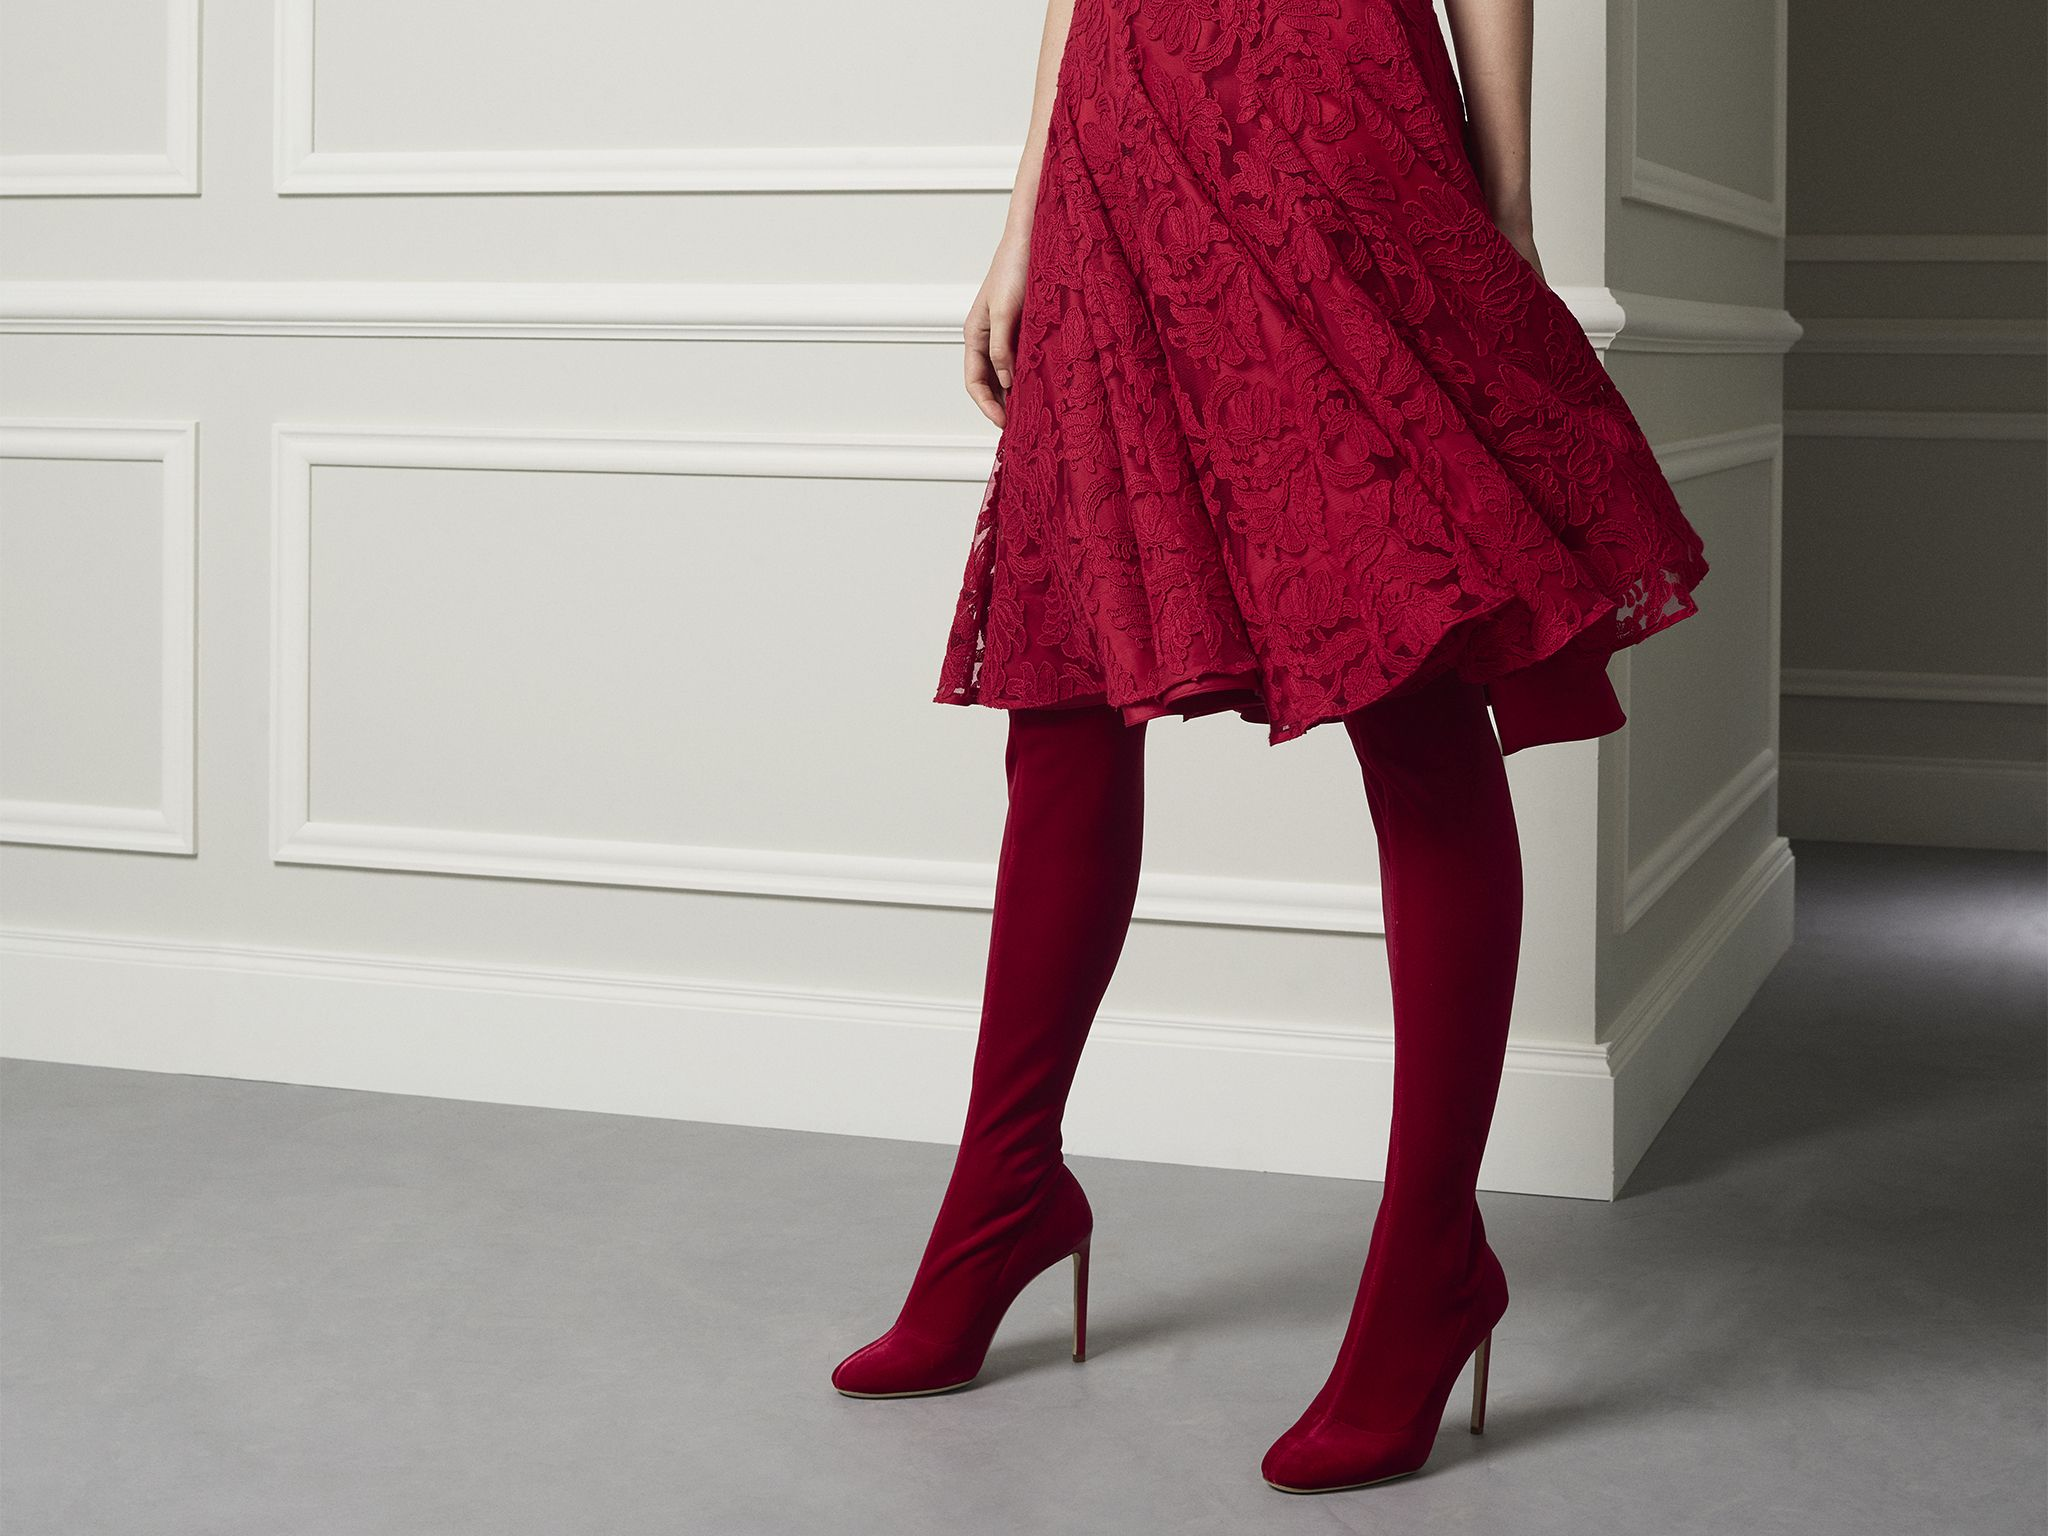 a7be1a9a9e78a CH Carolina Herrera Fall17 Red Stretch Velvet OTK Boots | One | Red ...